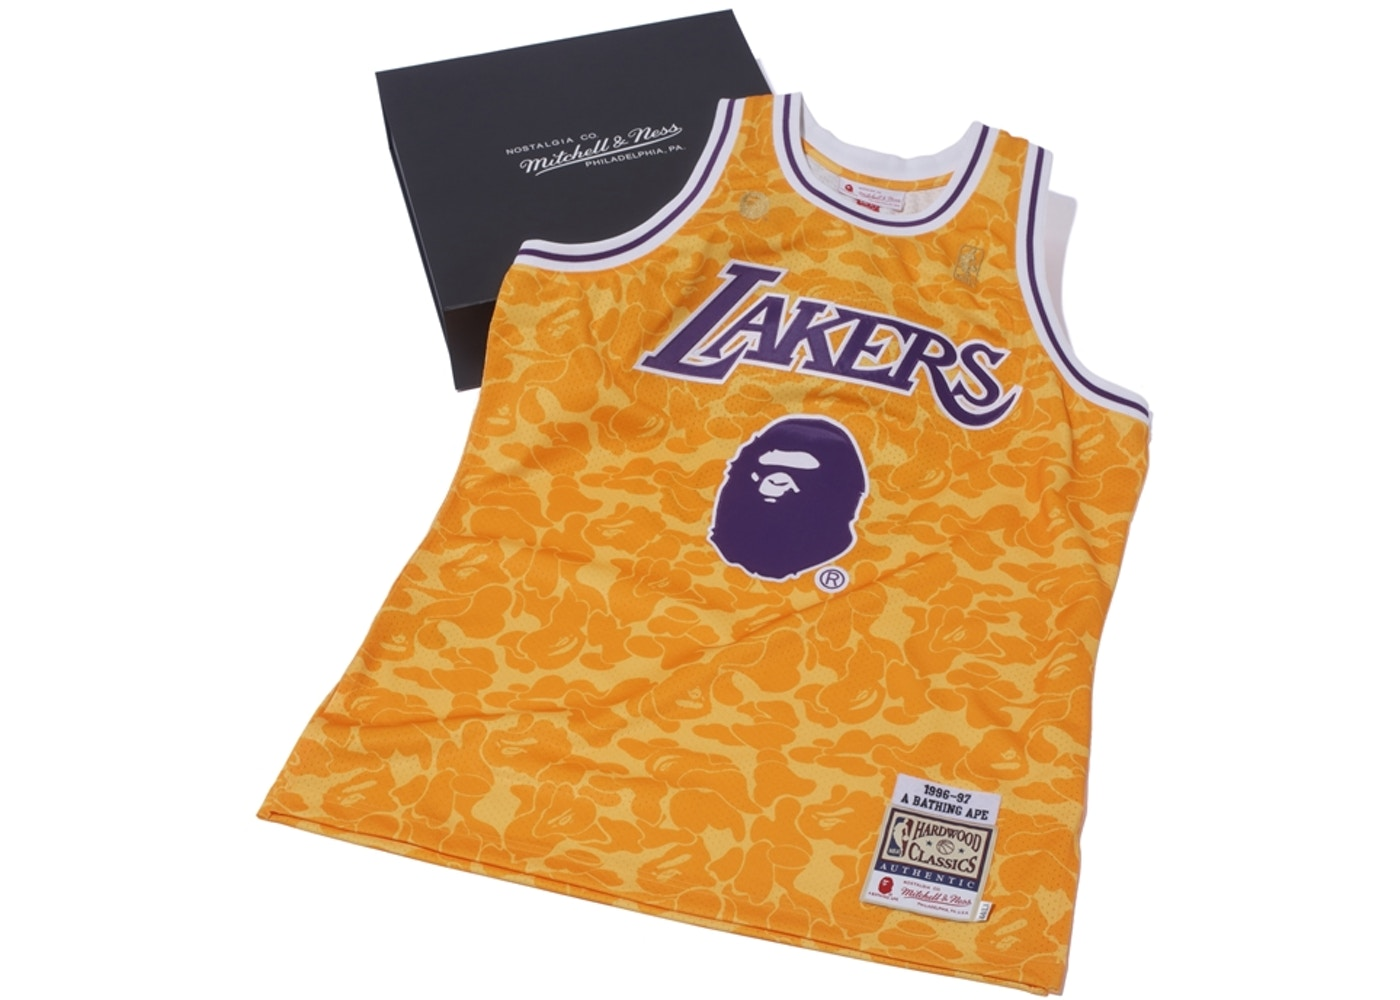 finest selection bddba 56b9b BAPE x Mitchell & Ness Lakers ABC Basketball Authentic Jersey Yellow